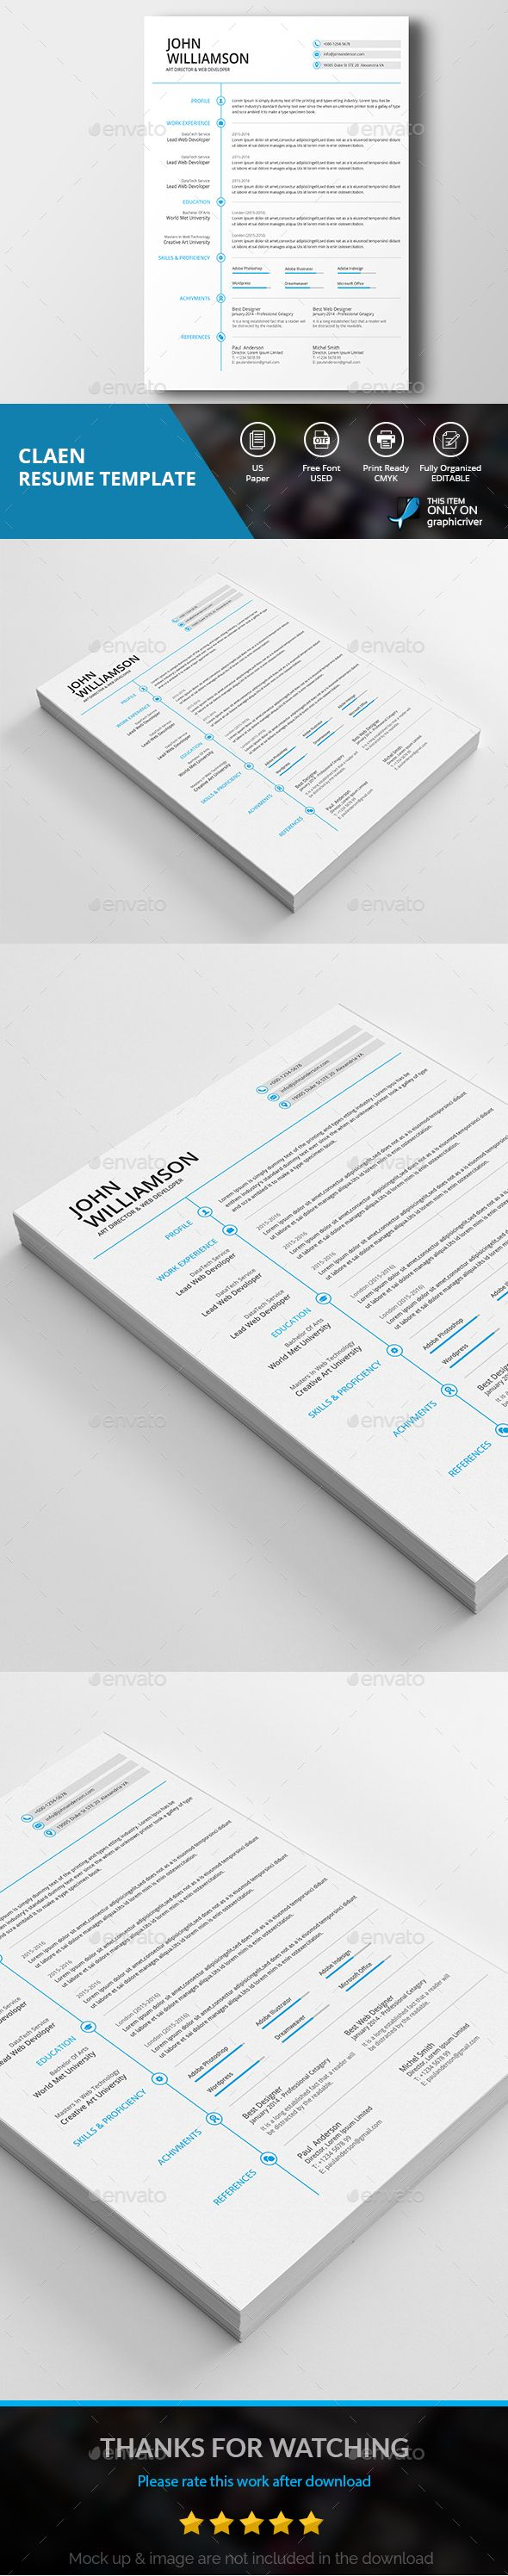 making resume format%0A Resume CV  Bailey by bilmaw creative on Creative Market   RESUME    Pinterest   Resume cv